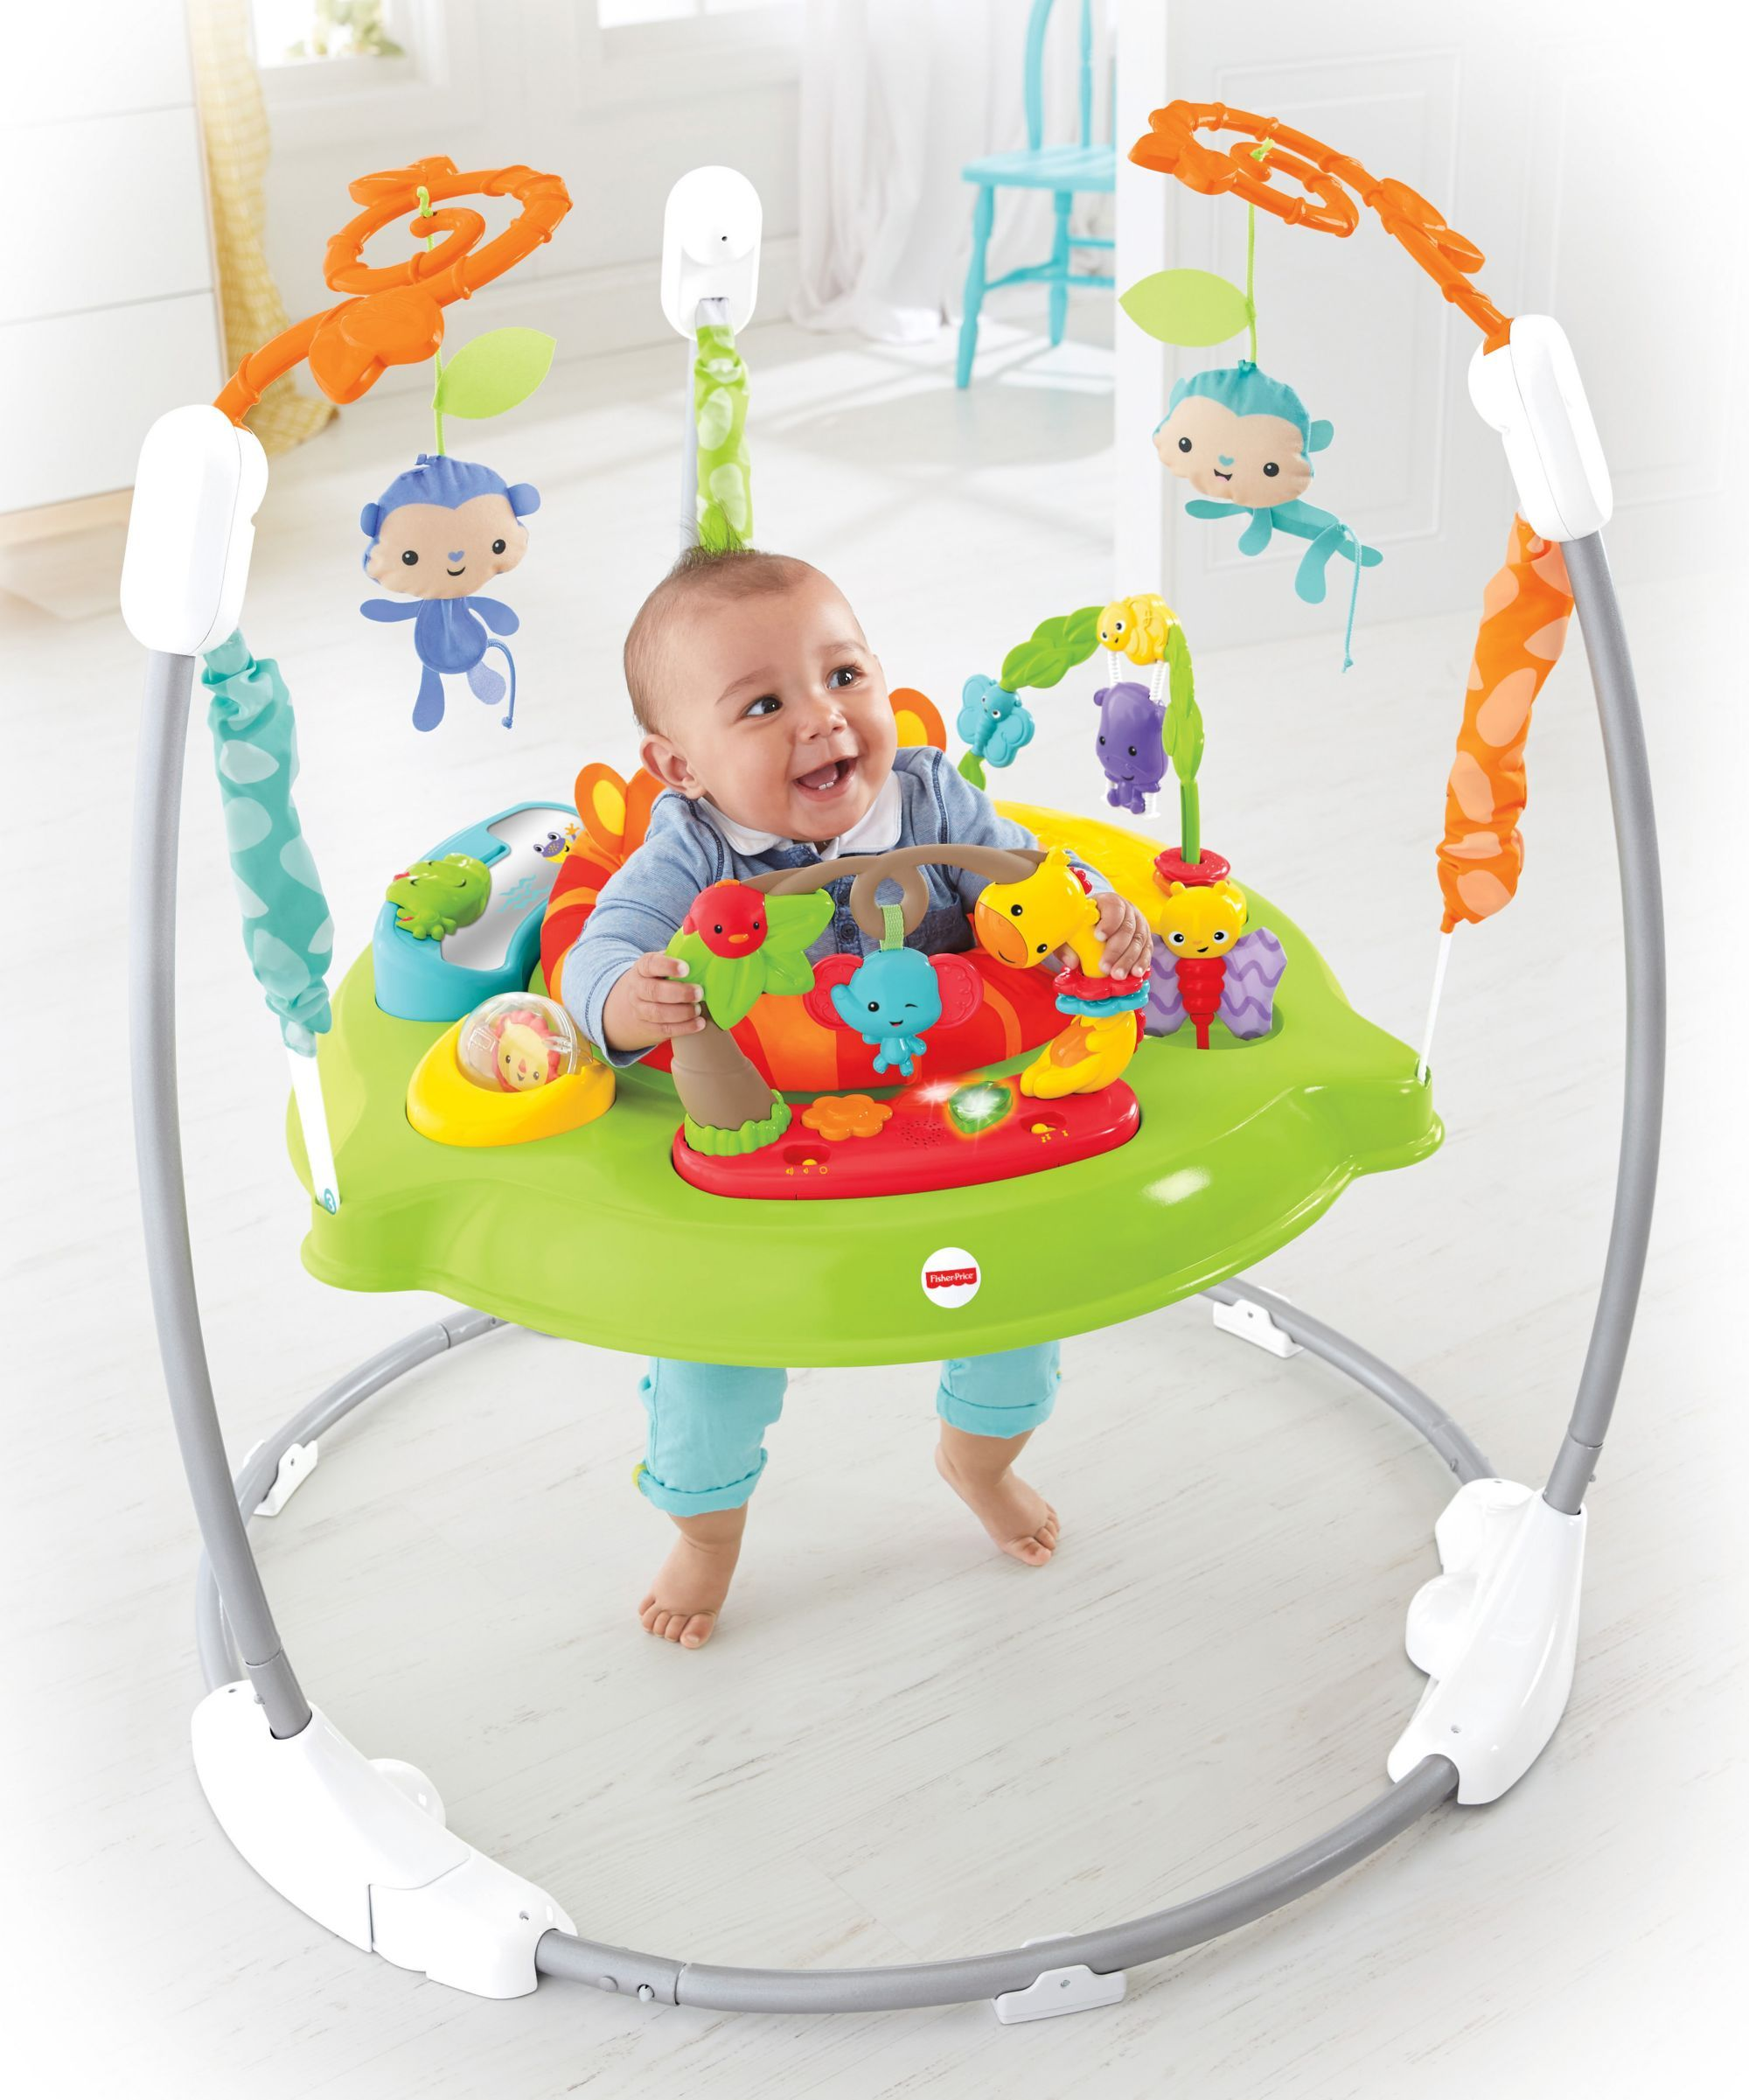 dd08bd1c9fc7 BOUGHT   Fisher Price Rainforest Jumperoo -Roaring (toys r us ...